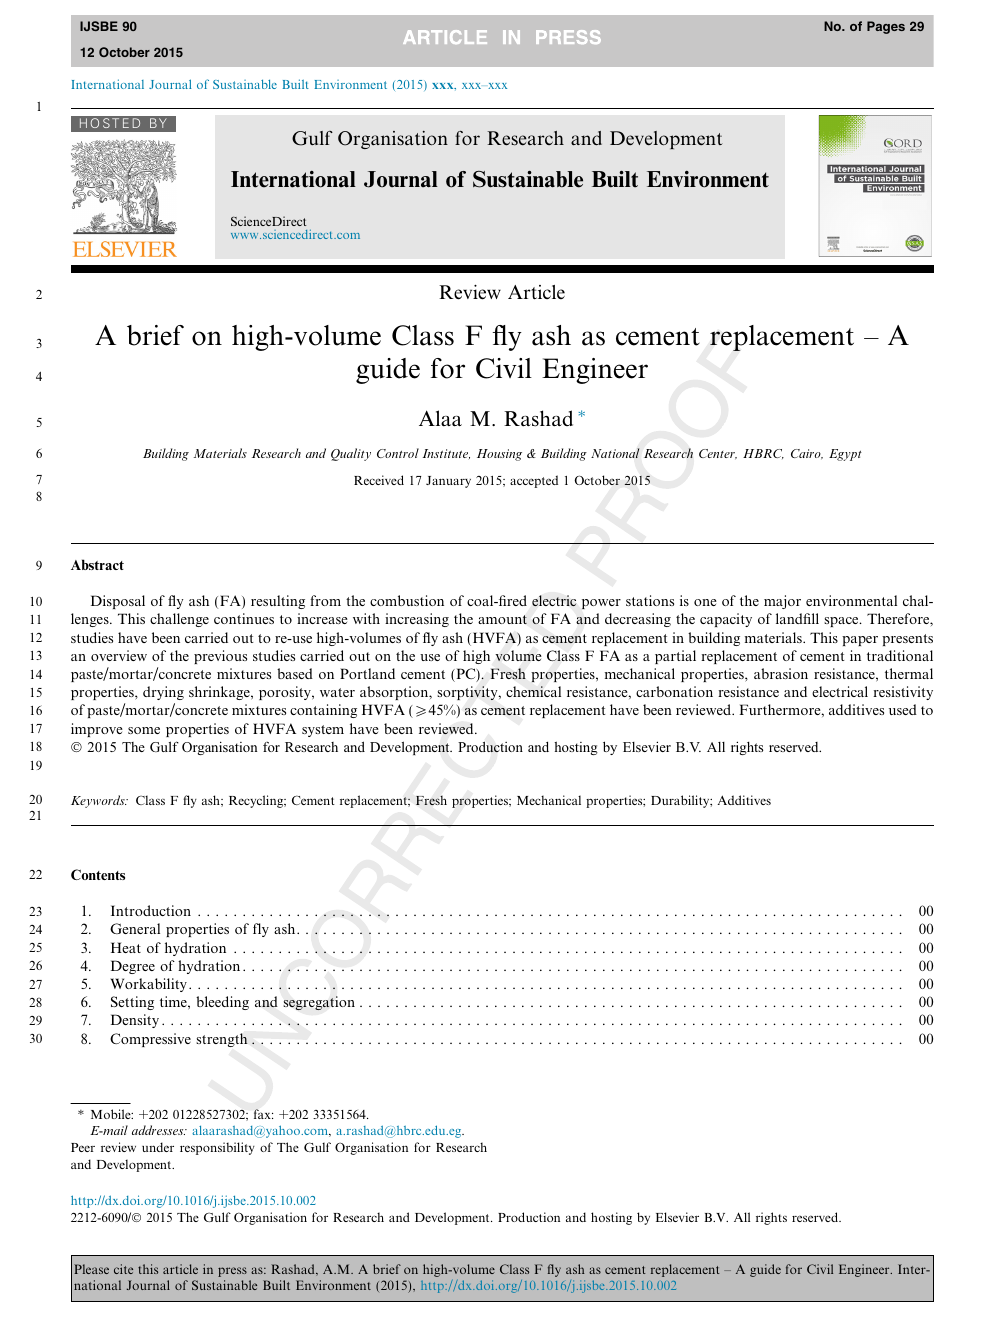 A brief on high-volume Class F fly ash as cement replacement – A